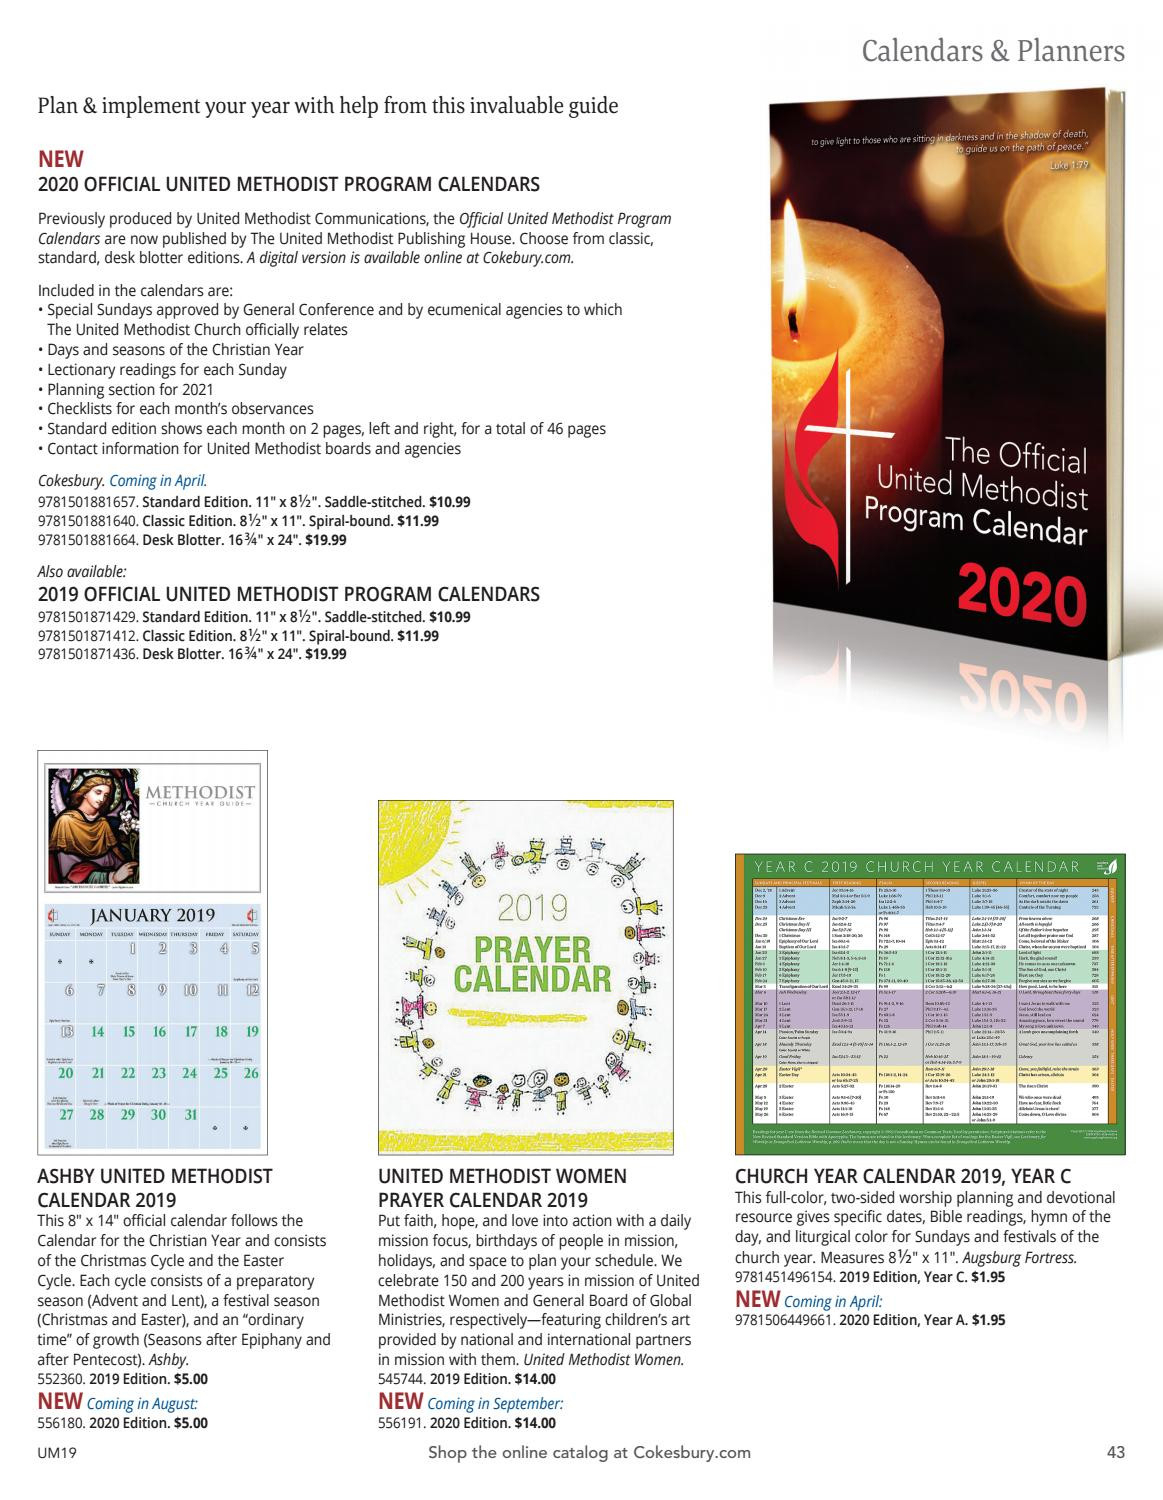 The United Methodist Church Resources For 2019 Catalog  2021  Methodist Lectionary Calendar